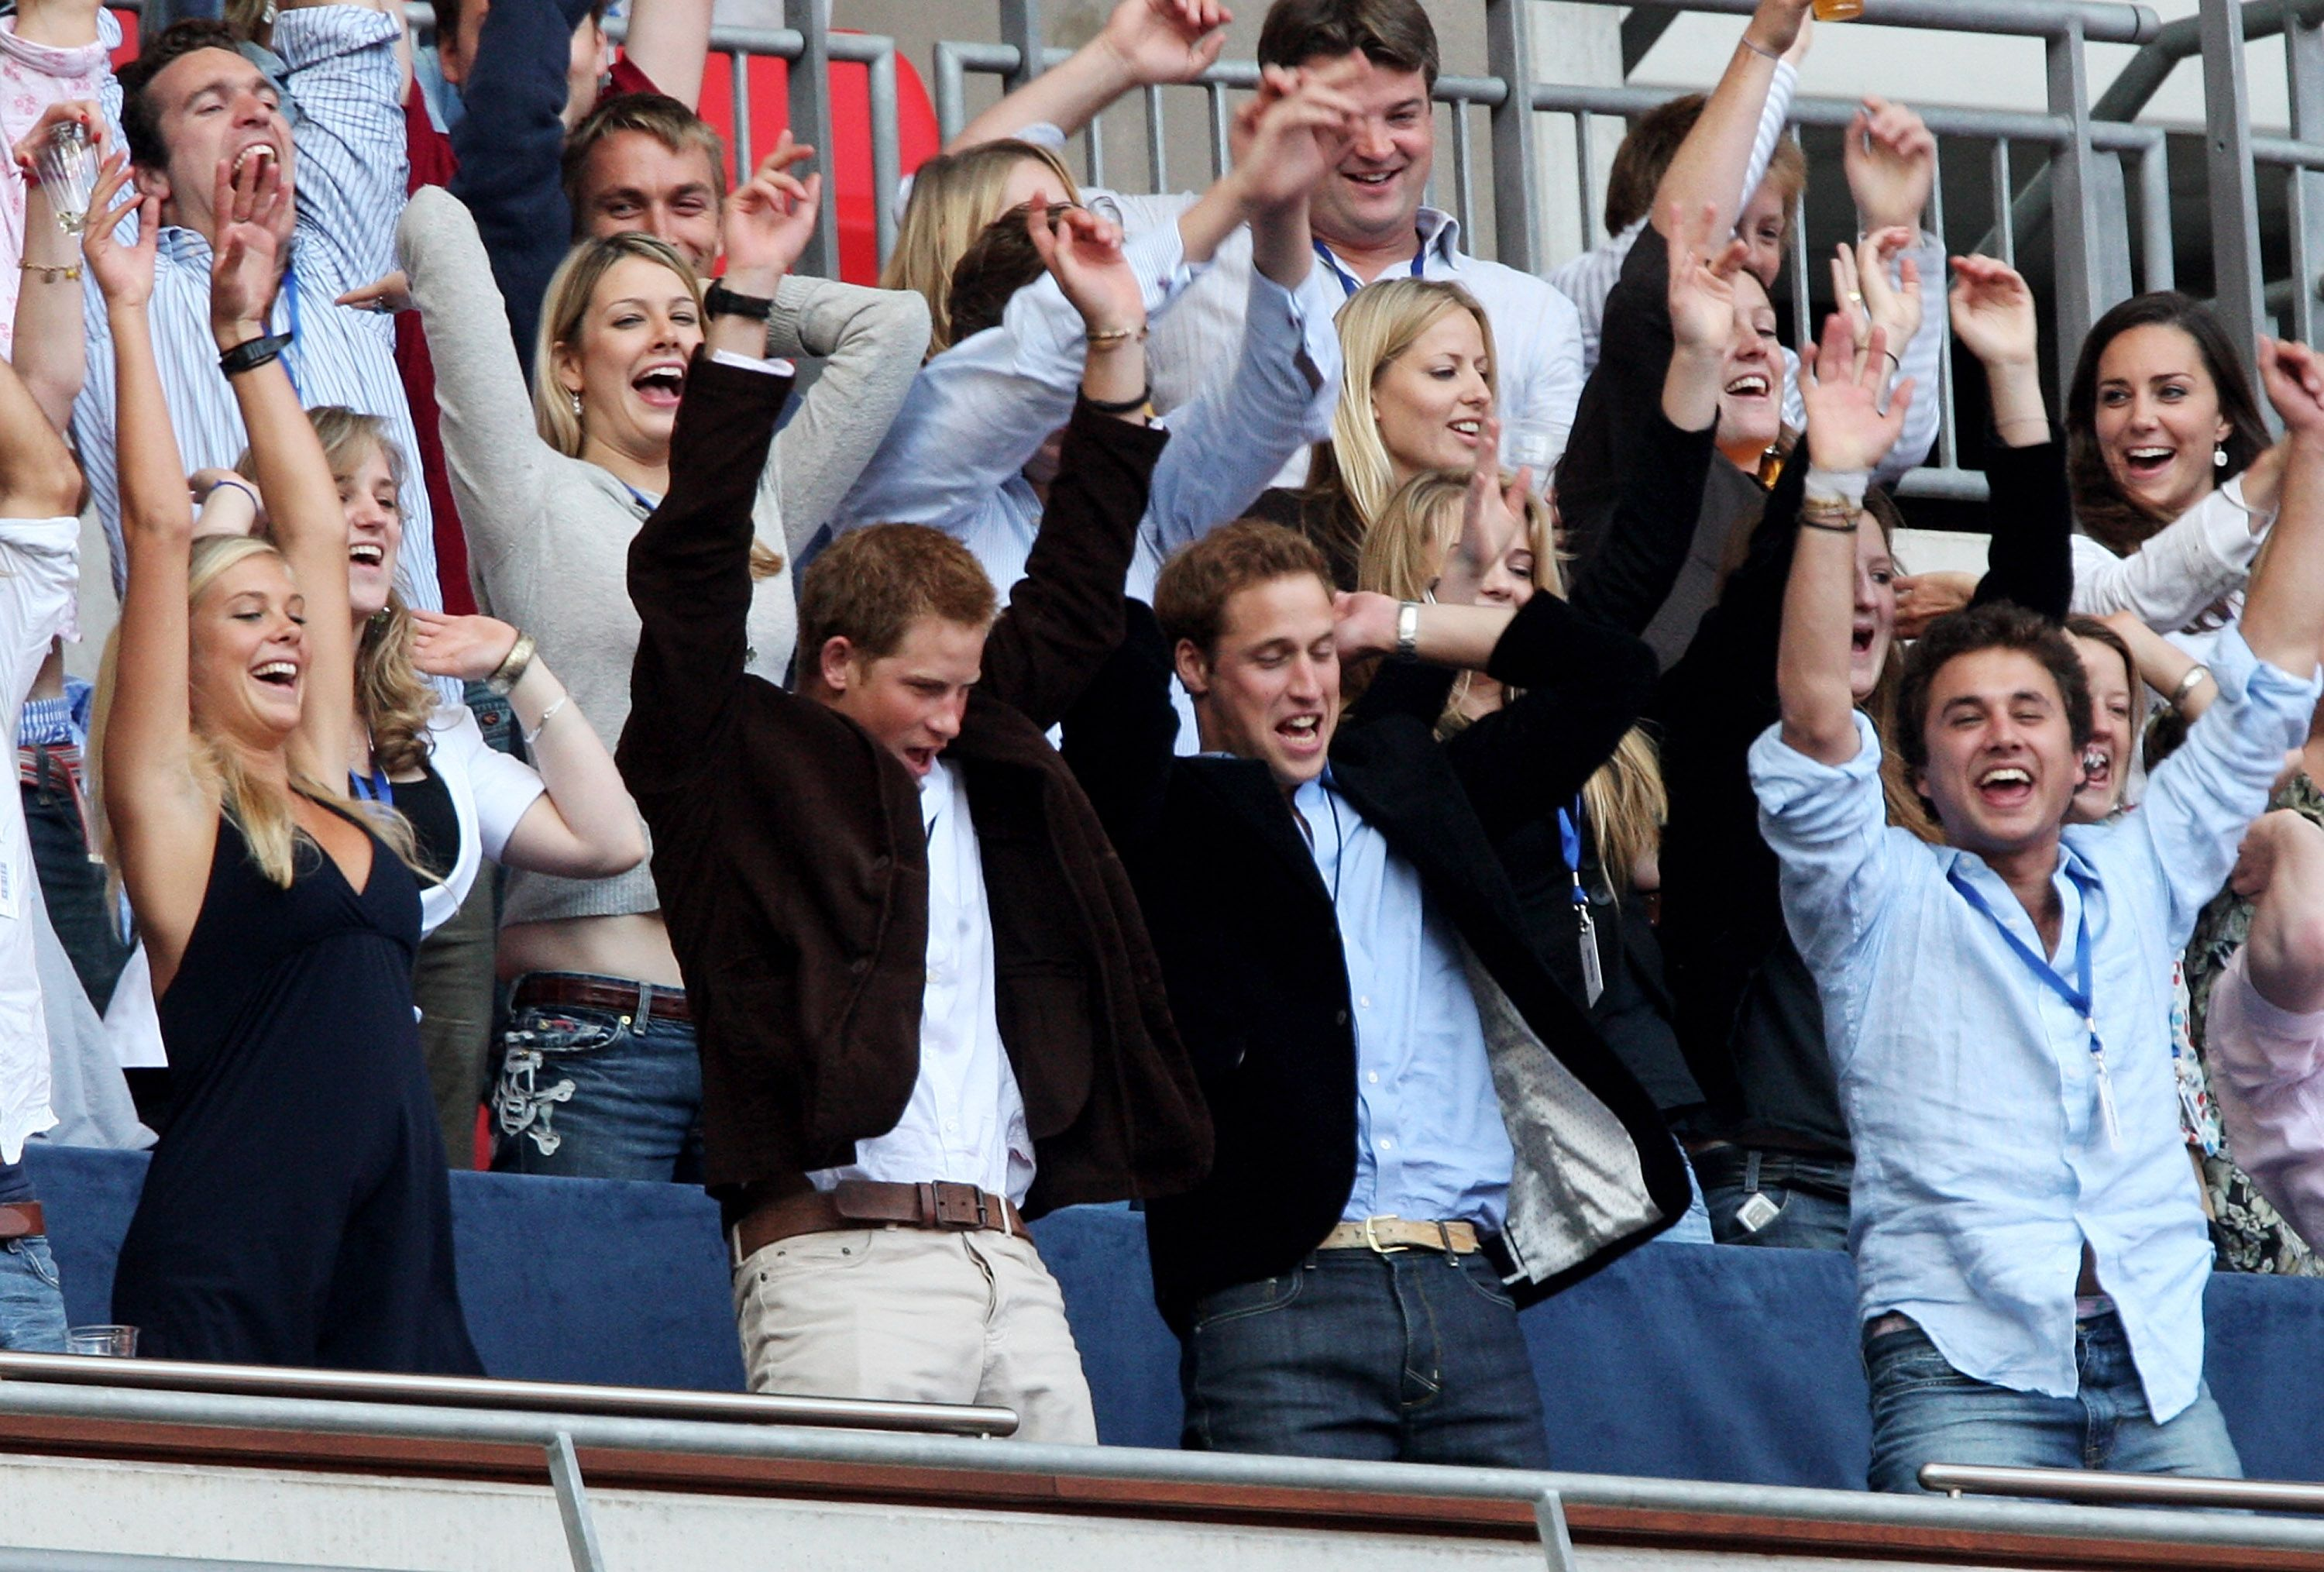 Kate sat two rows behind William at the Concert for Diana in June 2007 Getty